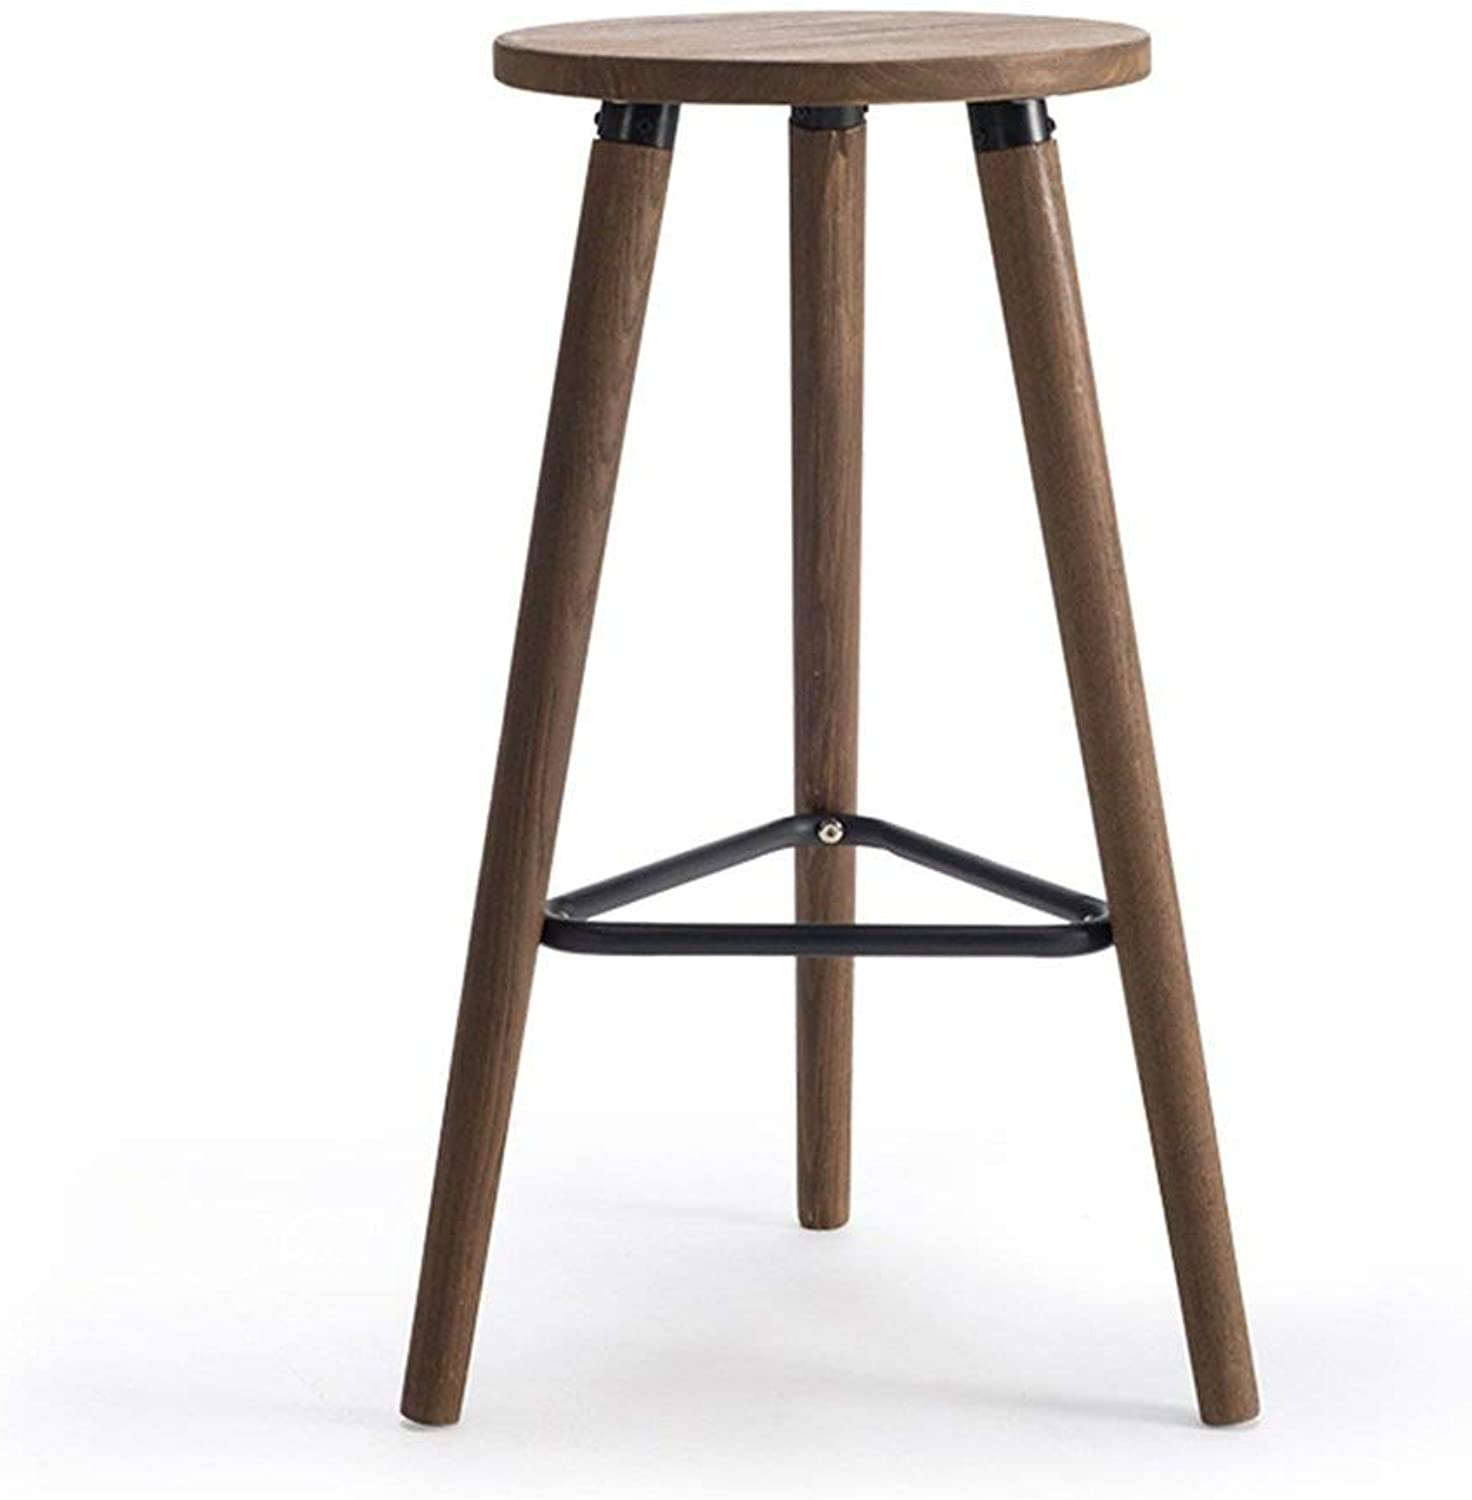 Solid Wood Bar Stools High Stools Bar Chairs Bars Cafes Business Hall Bar Stools FENPING (color   Brown)